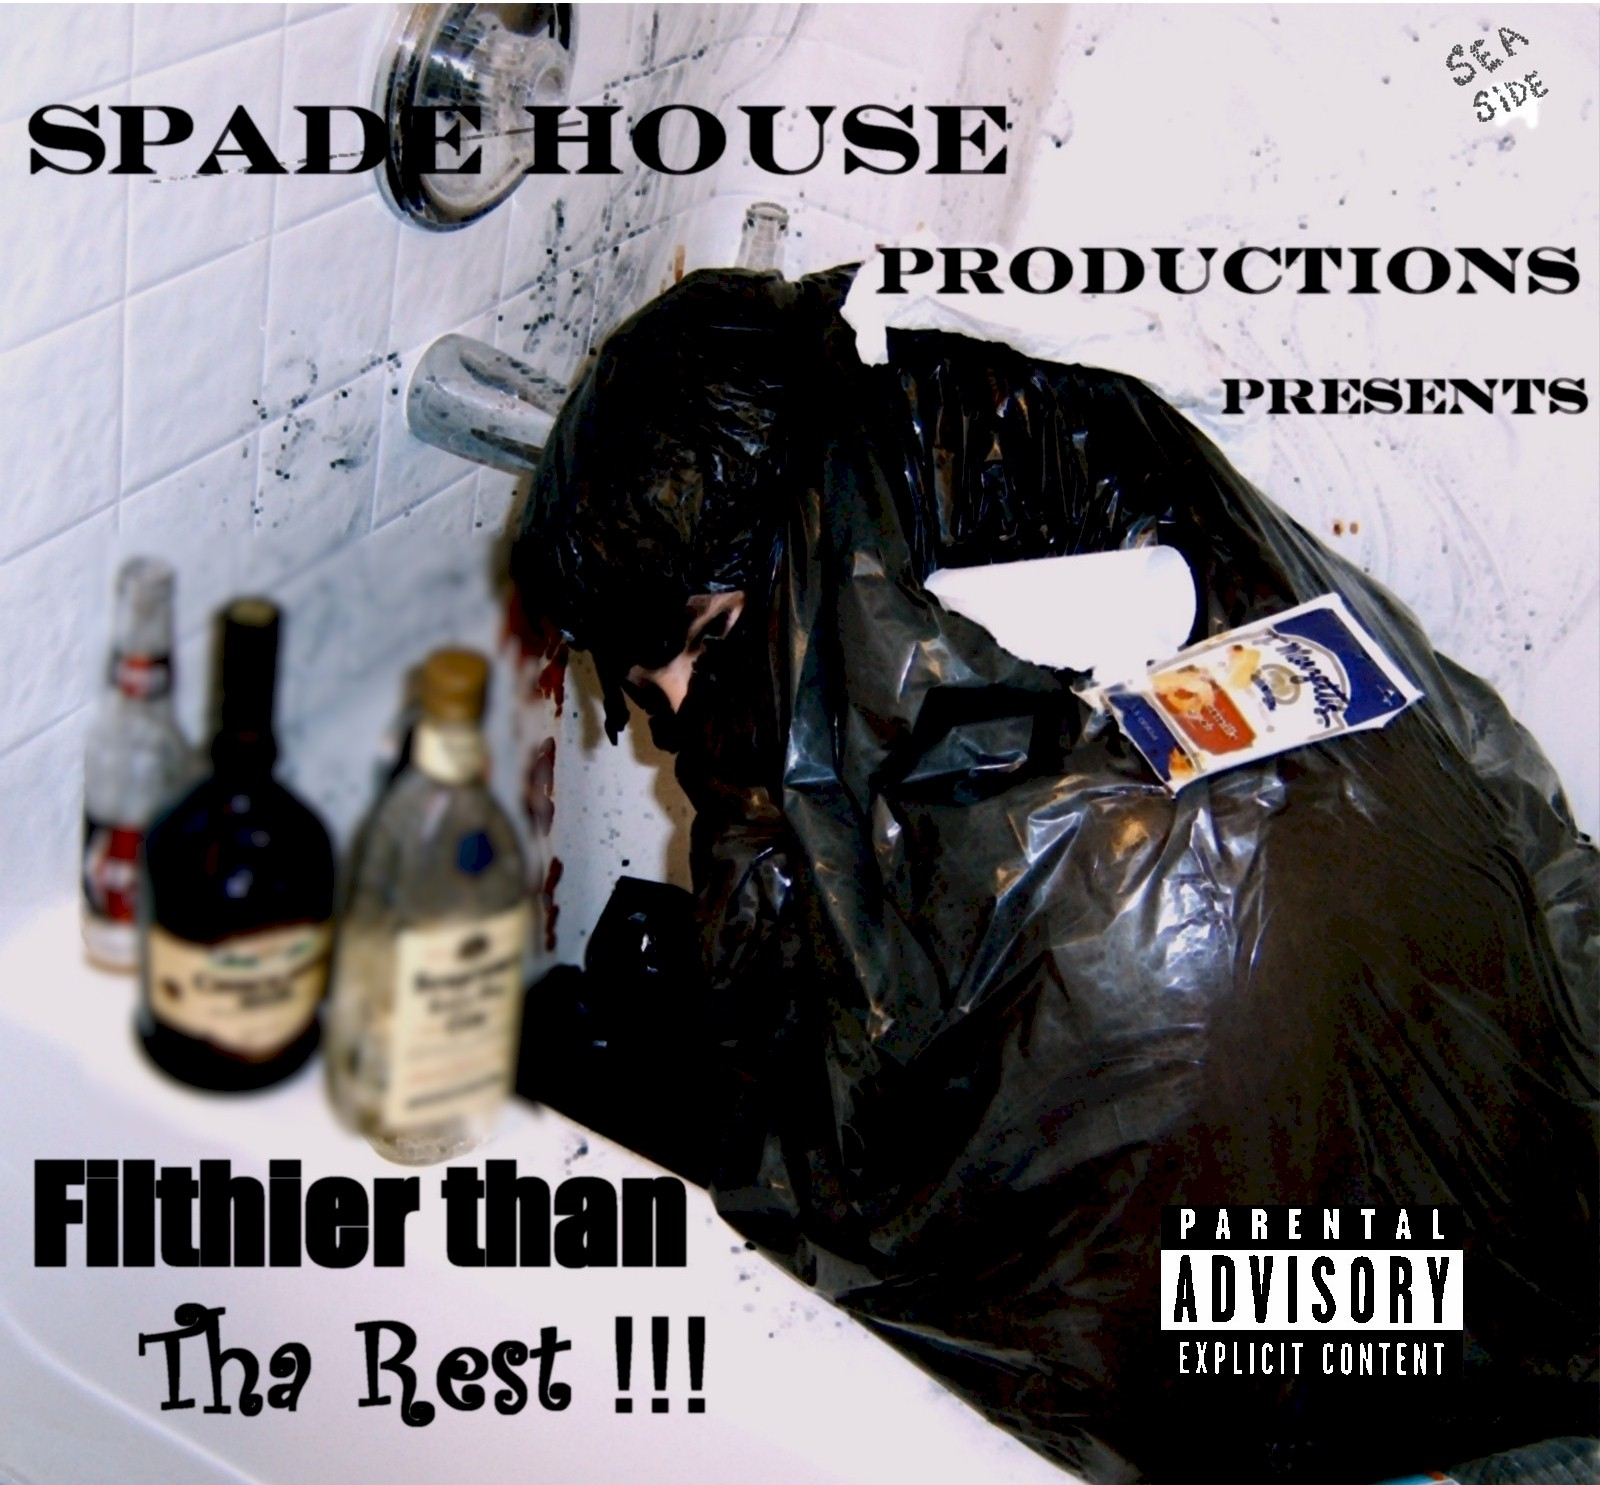 buy my filthier than the rest cd's 50 slim jewel case cd's with cover and shrink wrapped for $125